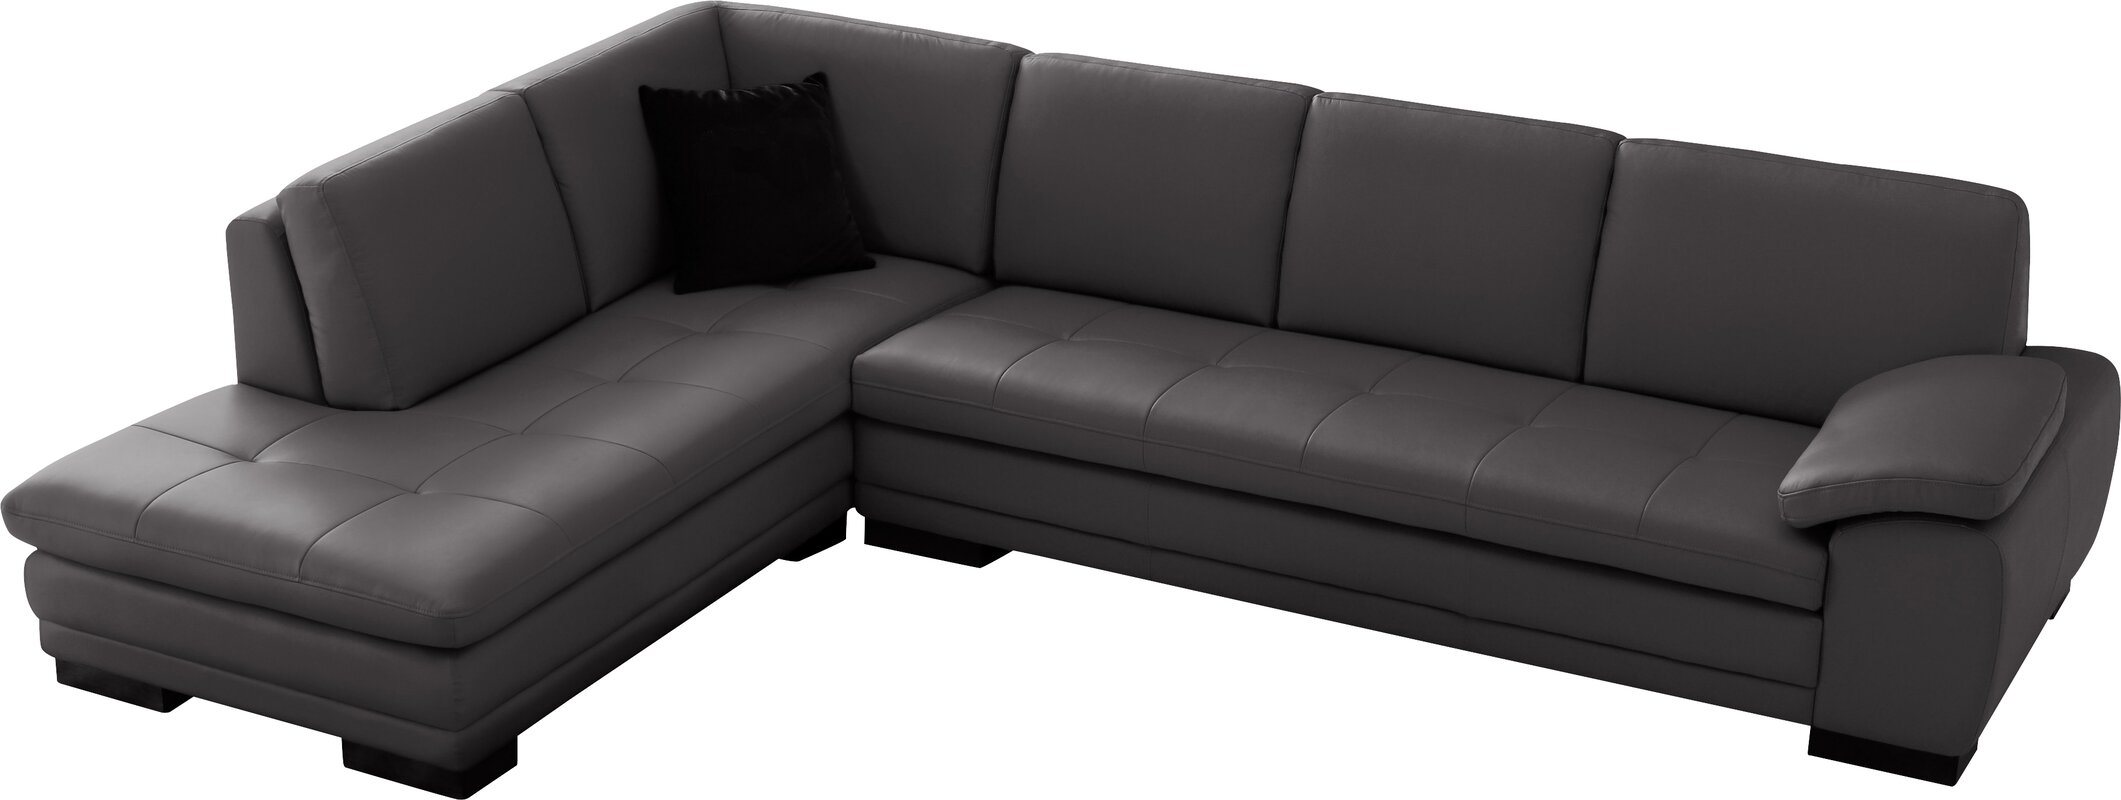 Best 10 Sleeper Sofa Sectional And Leather Sectional Sofas ...